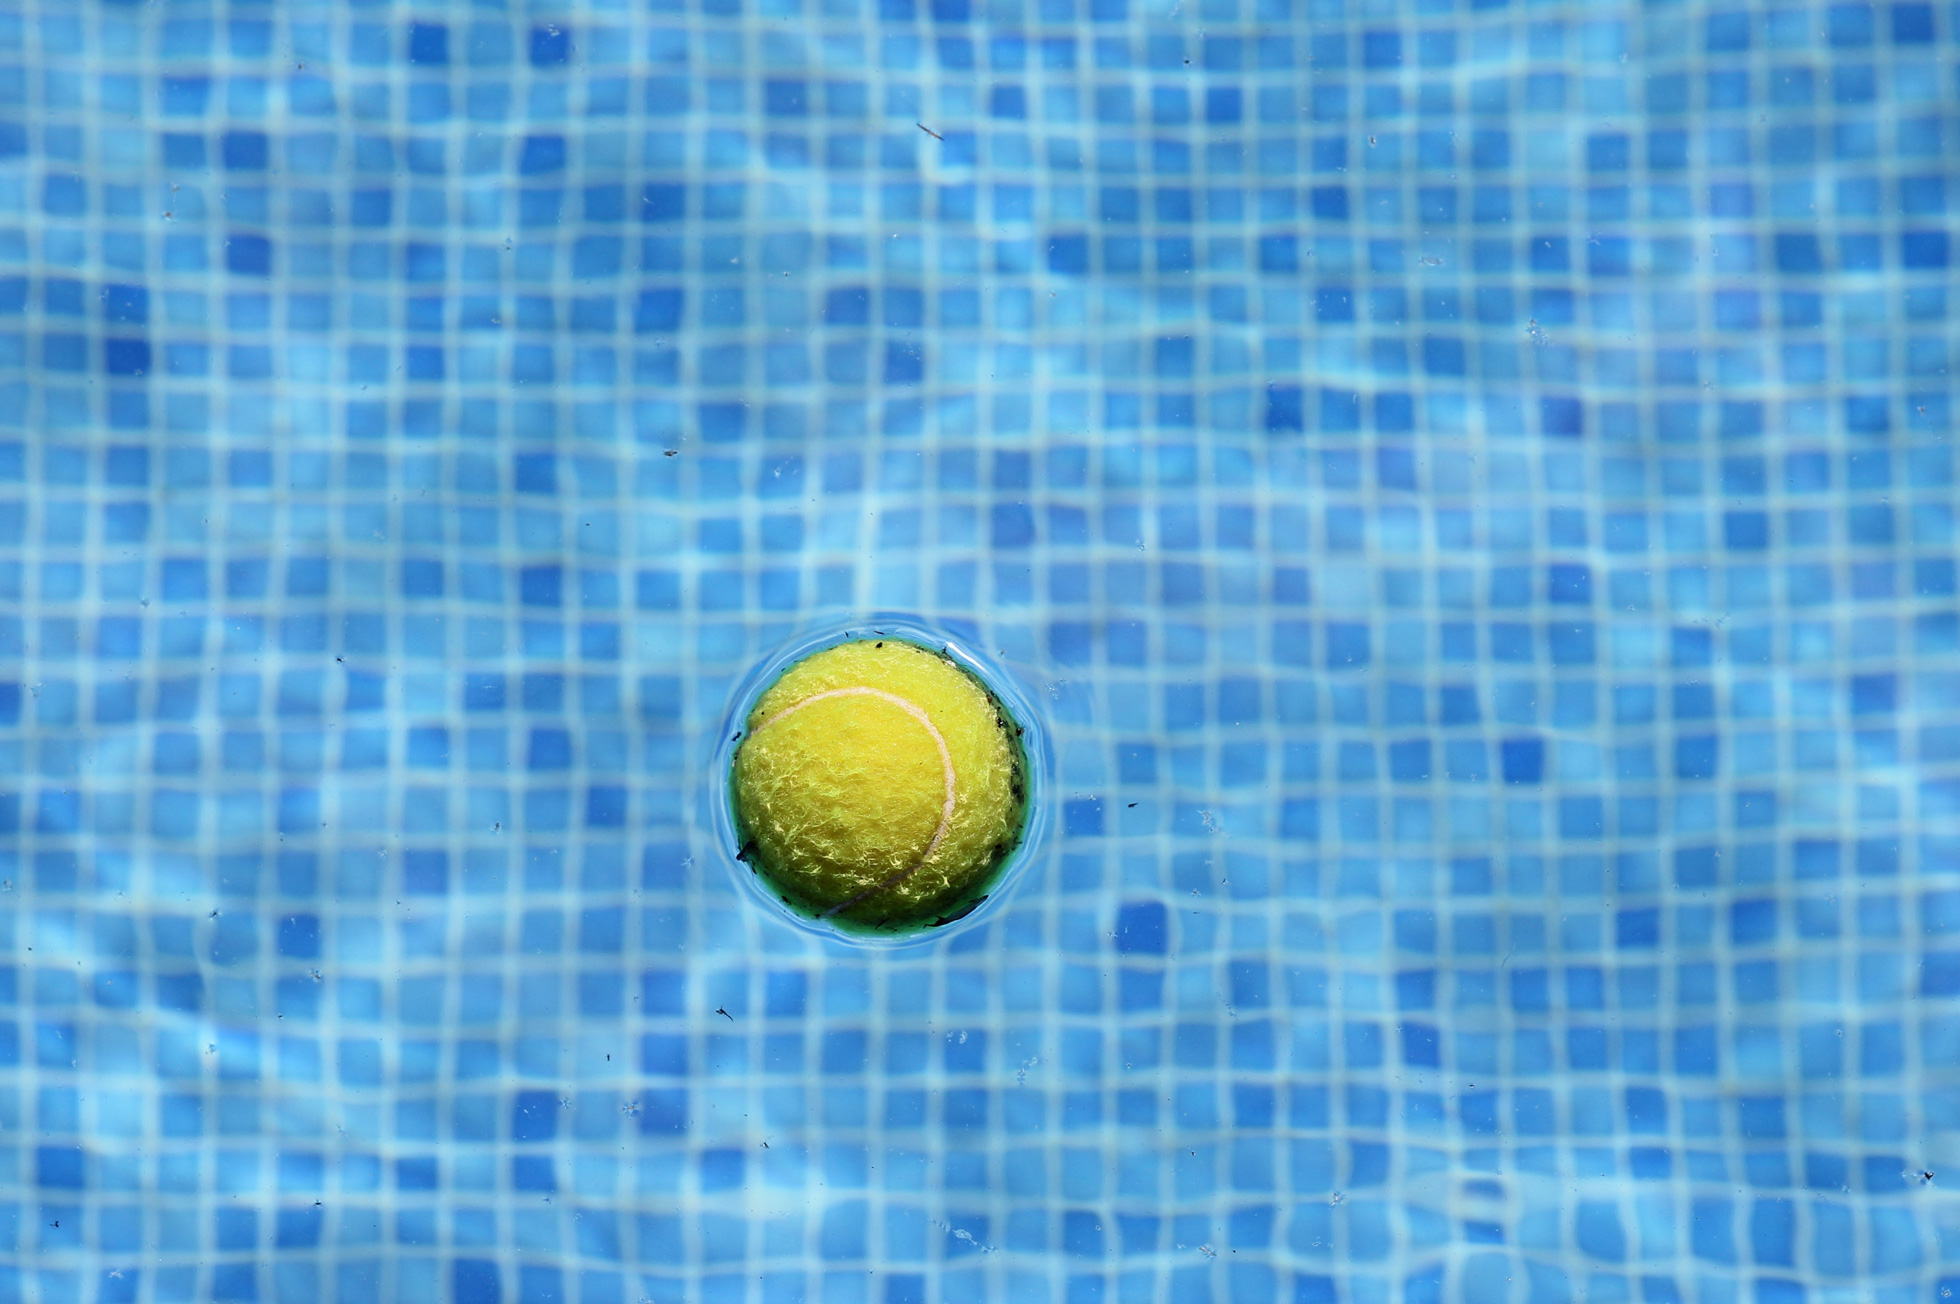 Tennis ball in a pool to help keep water clean